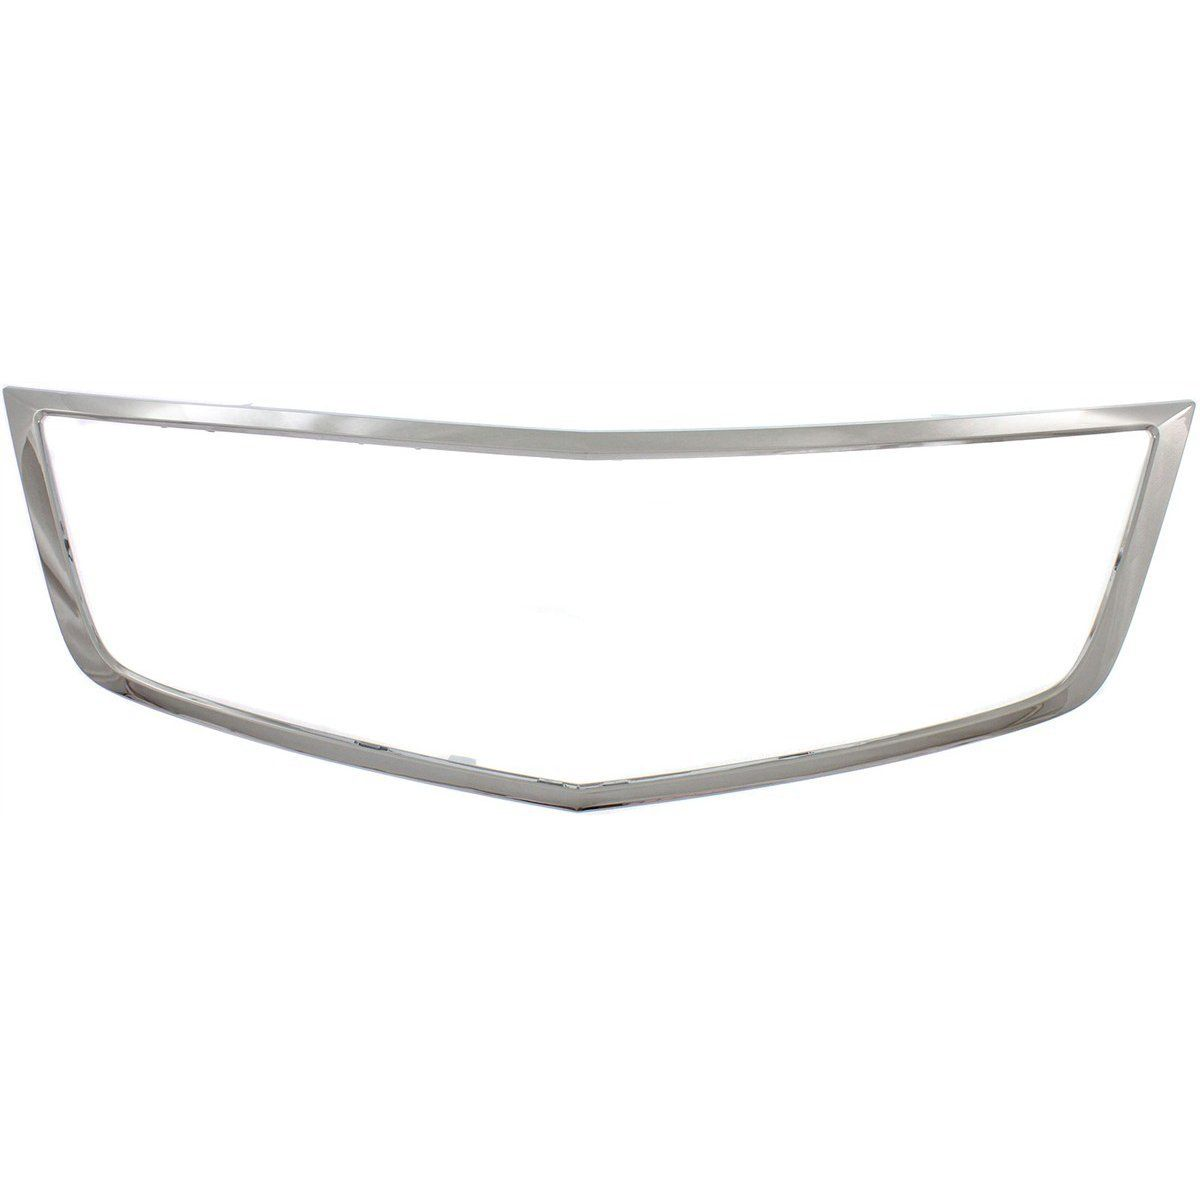 New Grille Trim Grill Chrome For Acura TSX 2011-2014